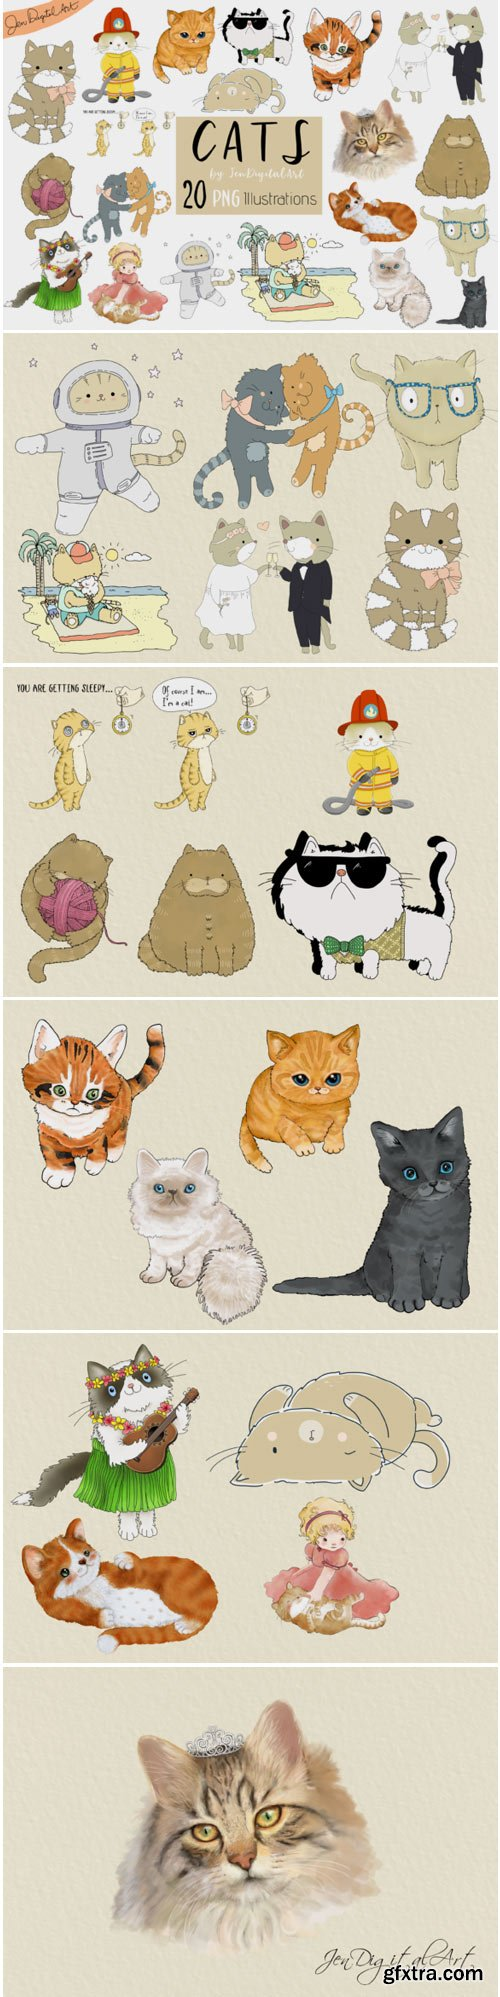 Cats 20 Assorted Illustrations 1701189